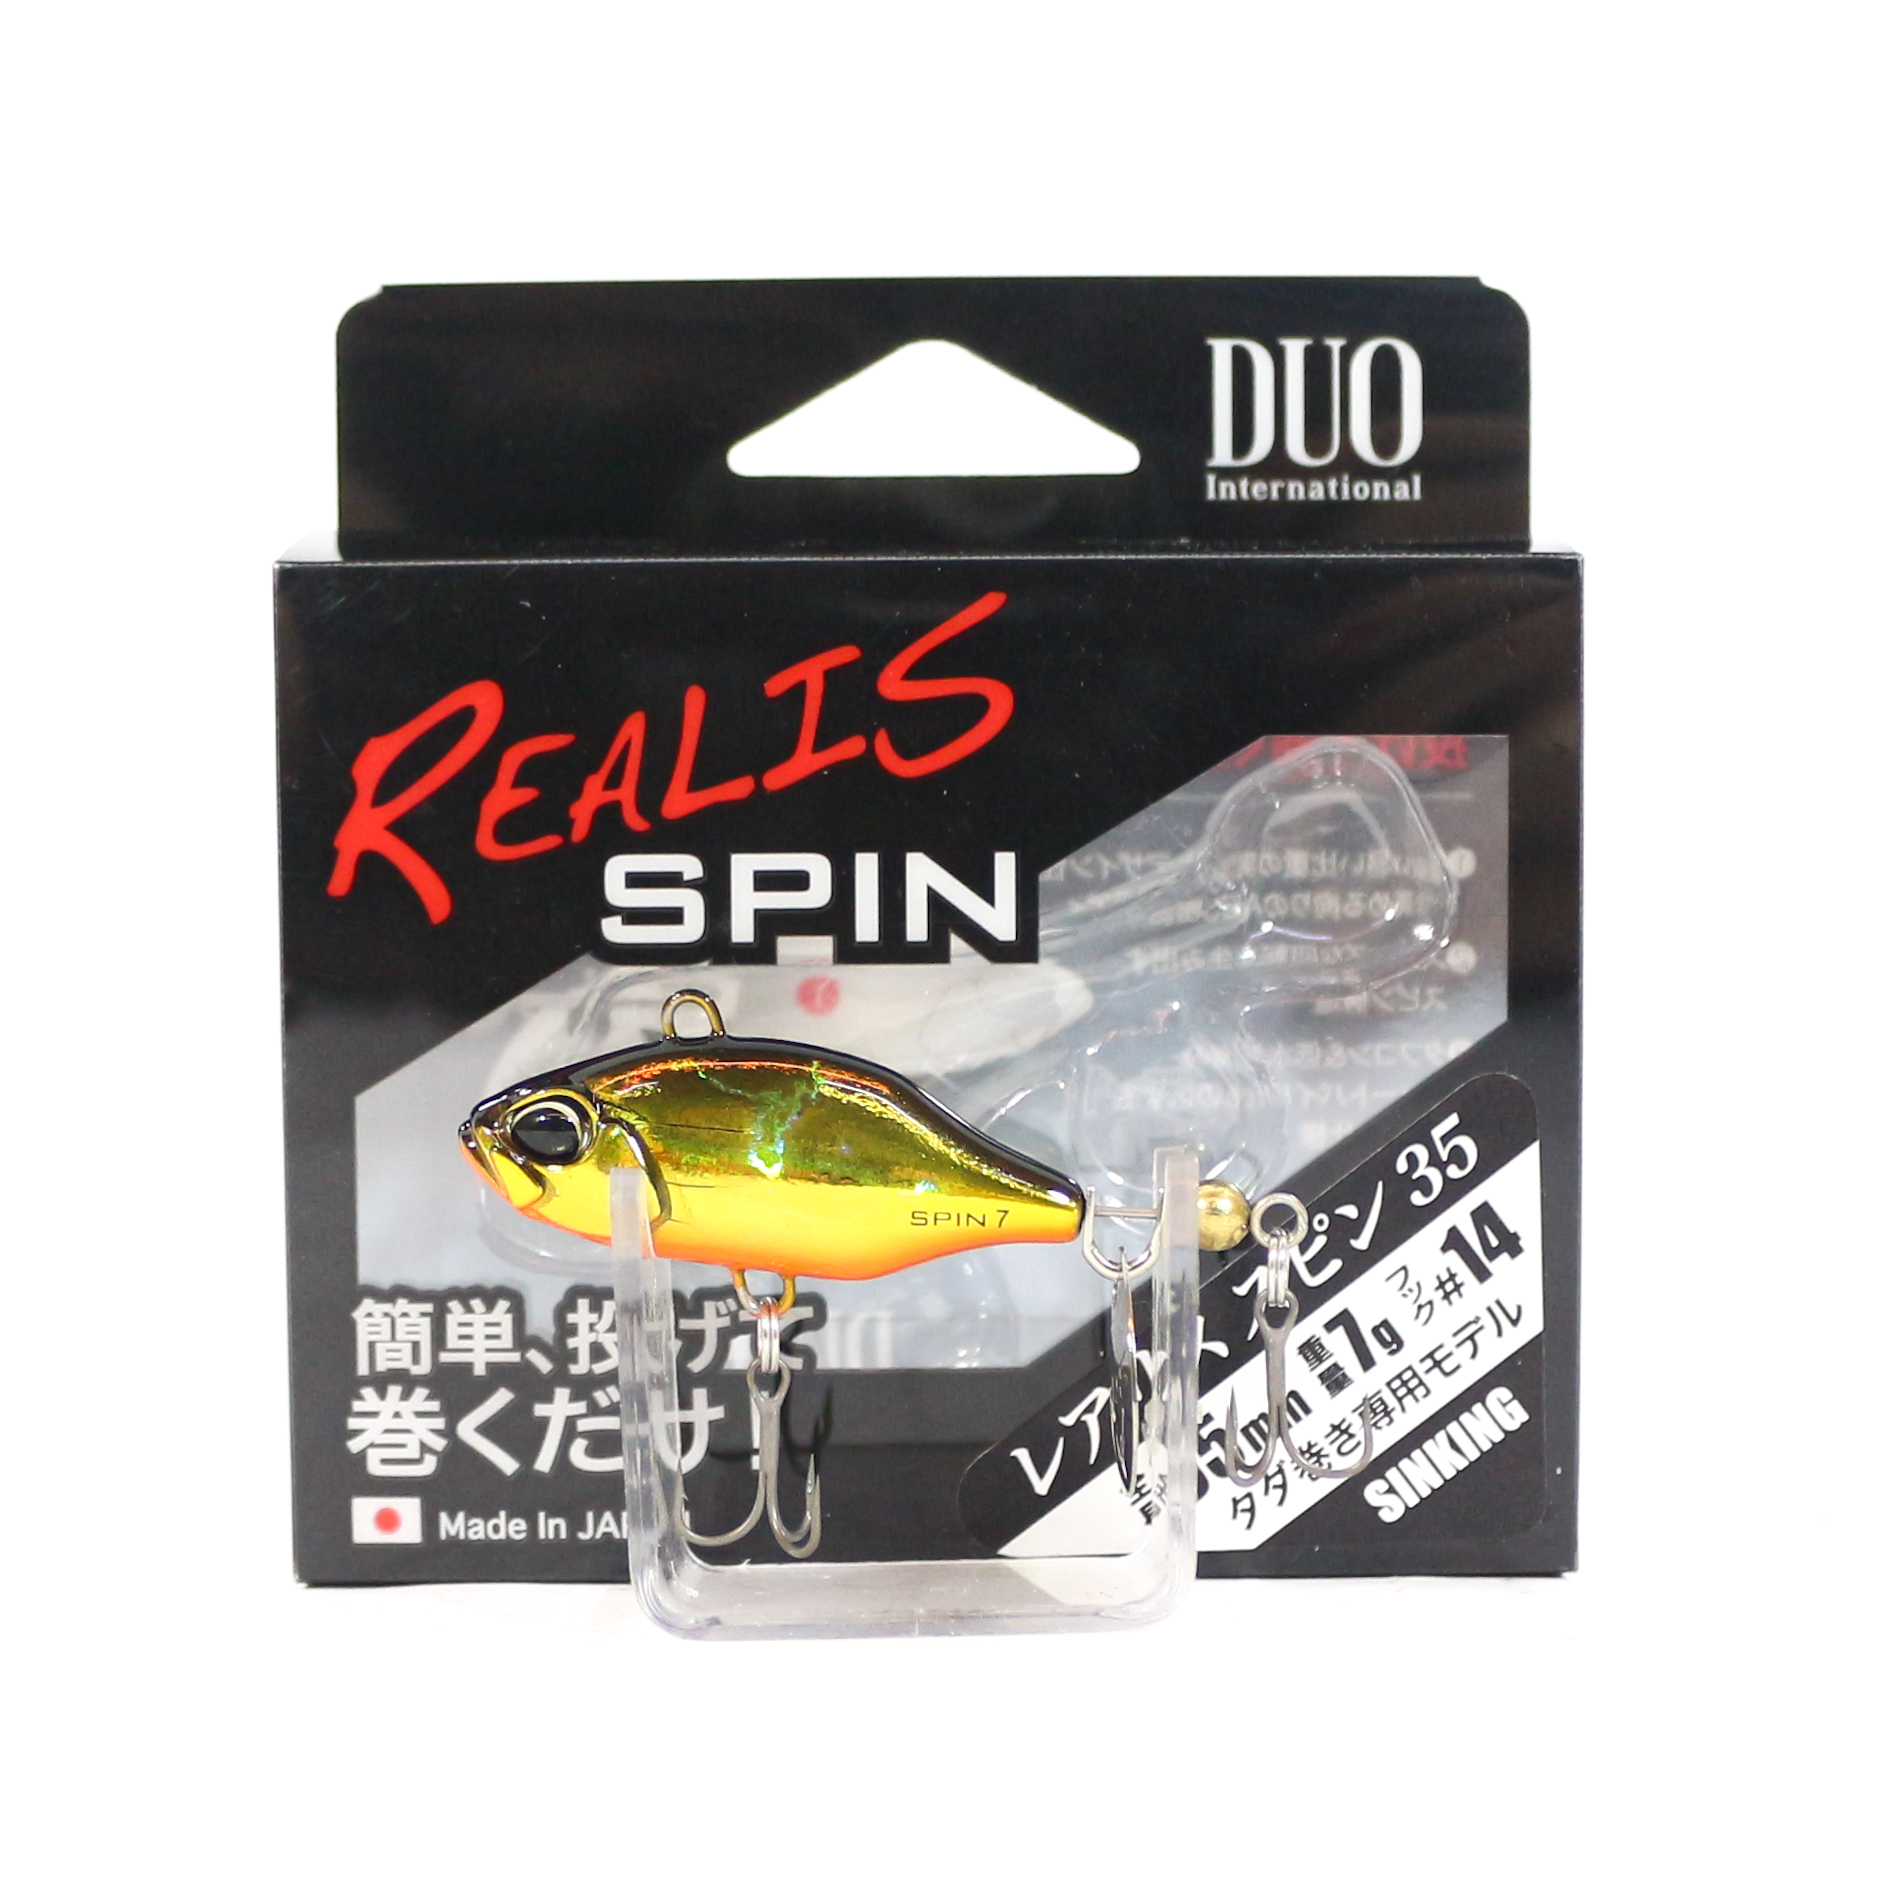 Duo Realis Spin 7 grams Spinner Bait Lure CDA4054 (3266)